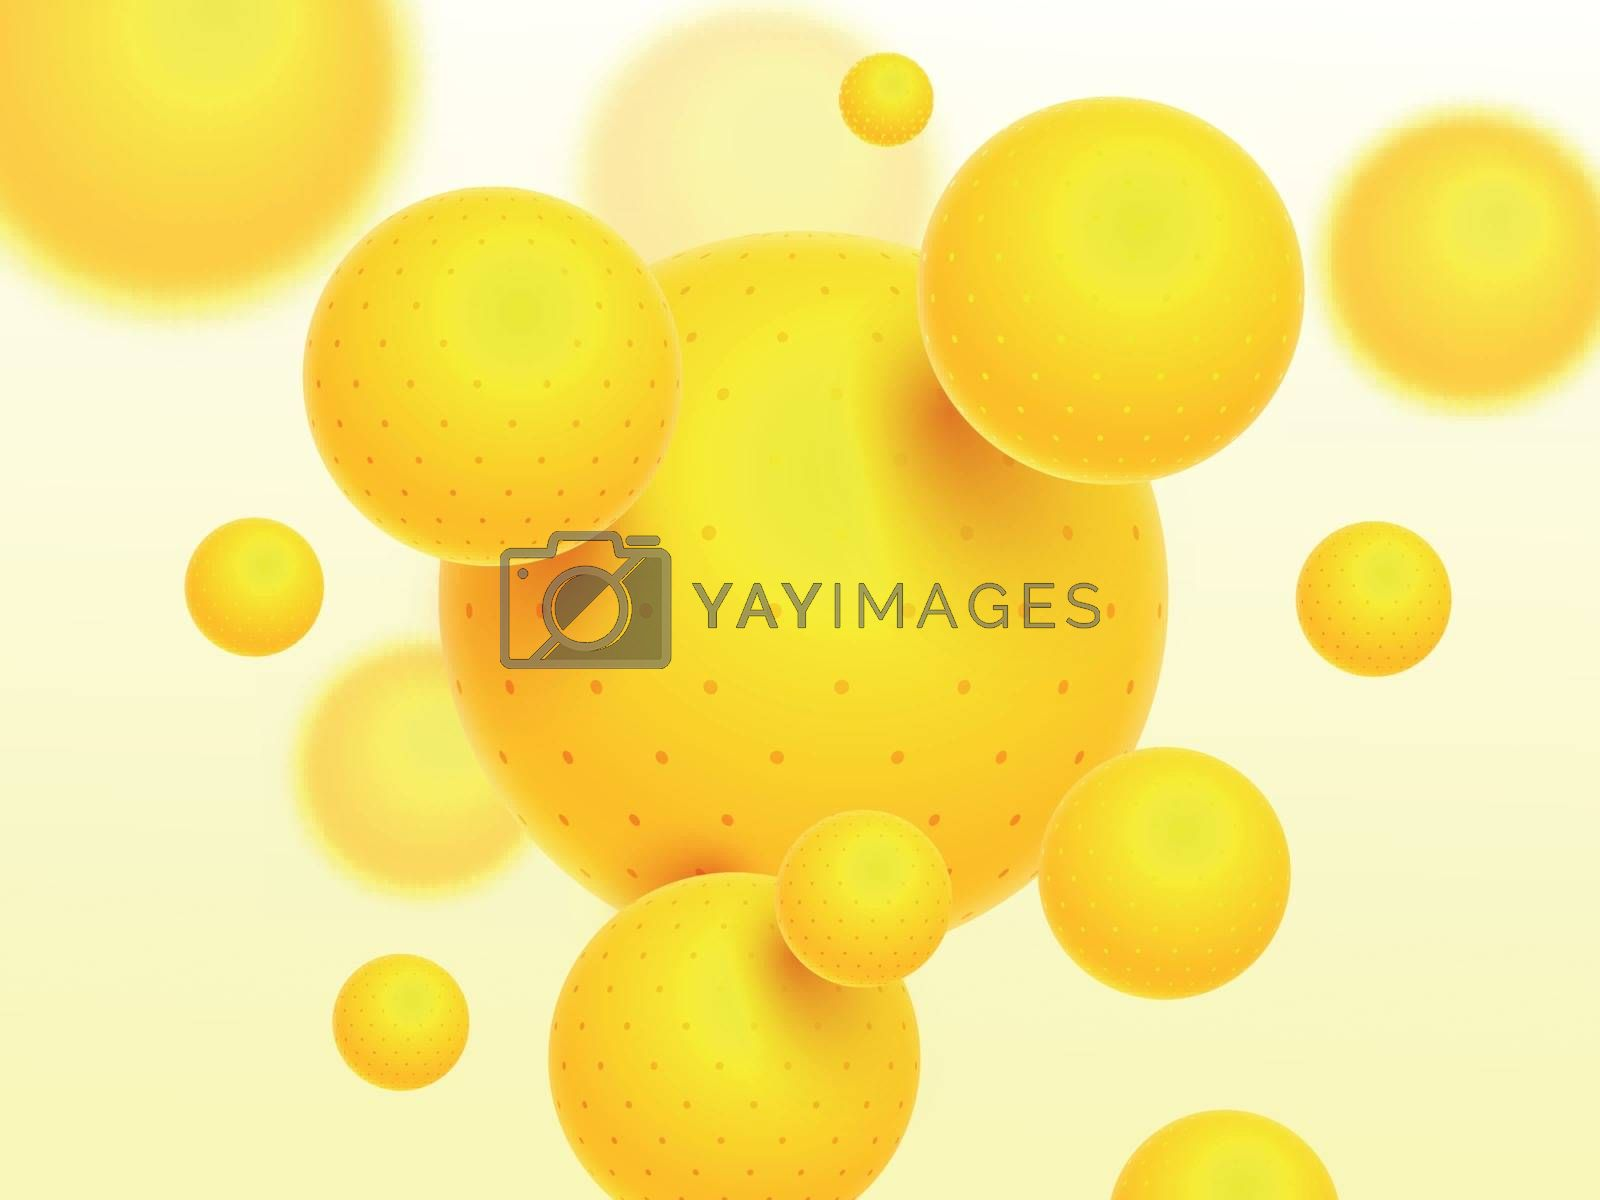 Royalty free image of Glossy yellow abstract elements decorated background. by aispl